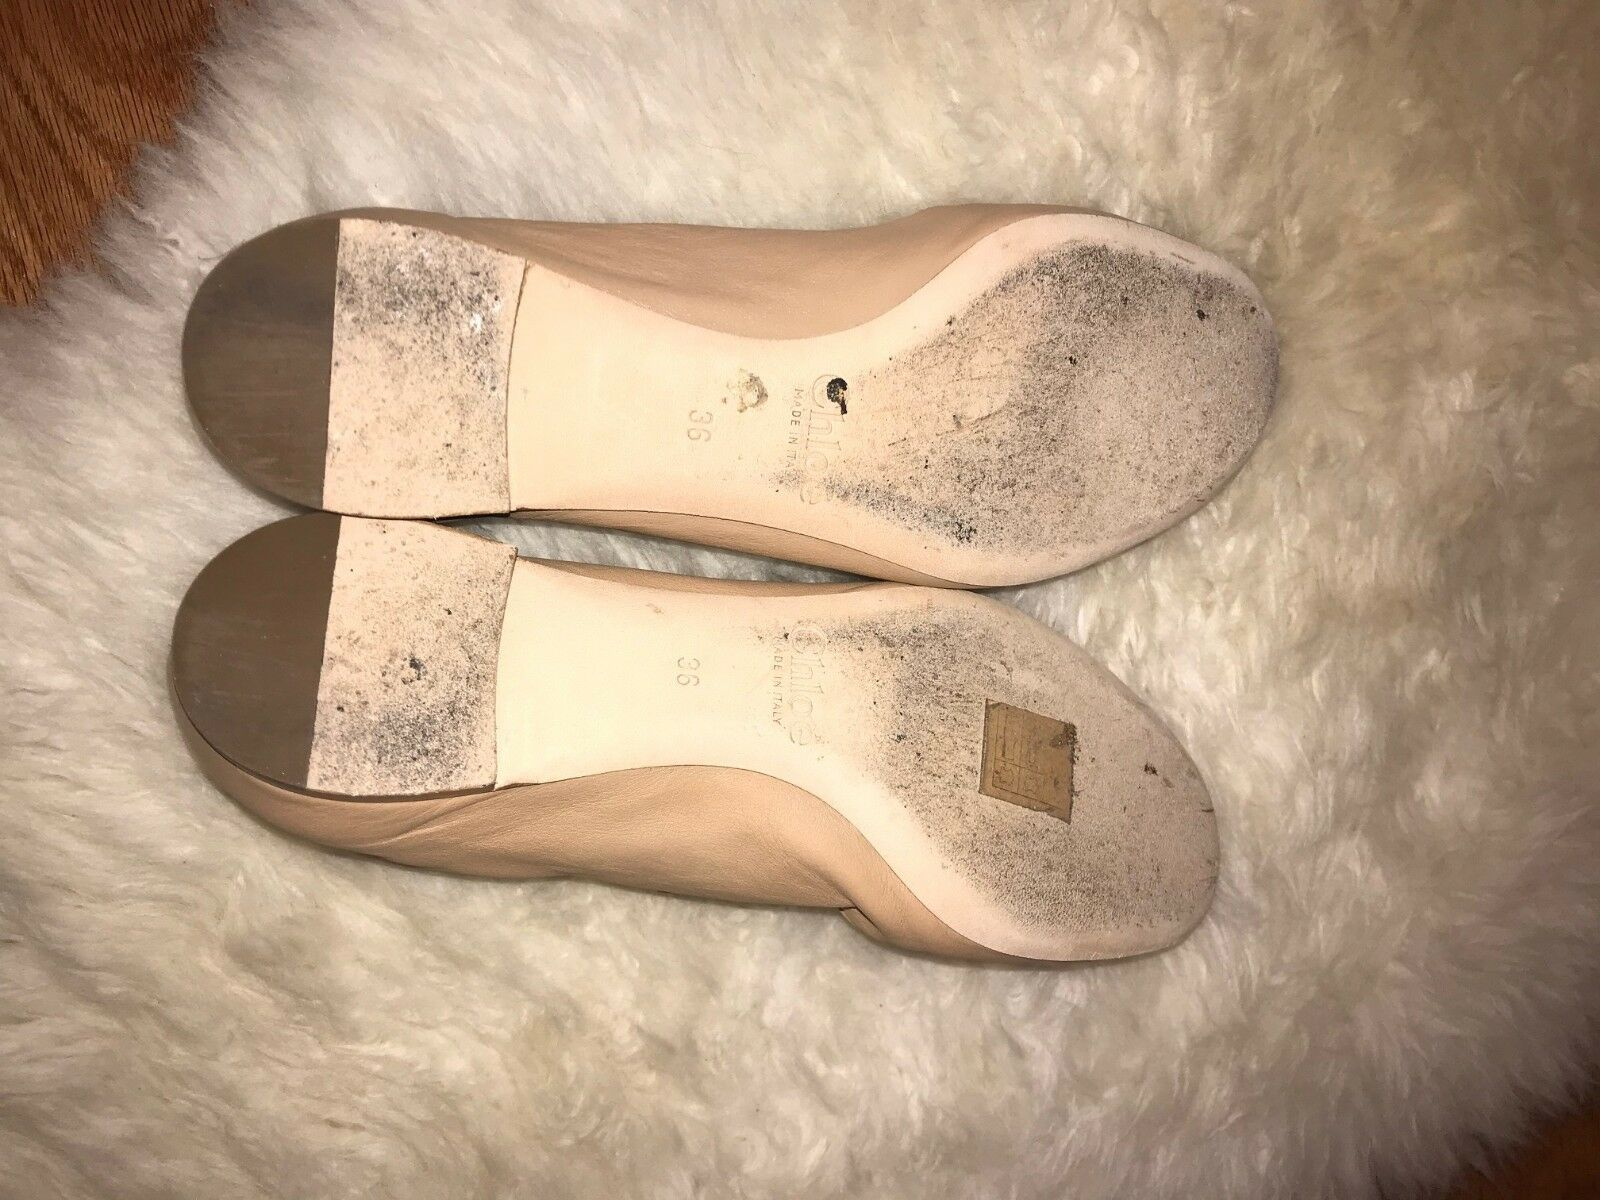 Chloe Lauren Scalloped Nude Ballet Flats schuhes Nude Scalloped  Leder 9f0a17